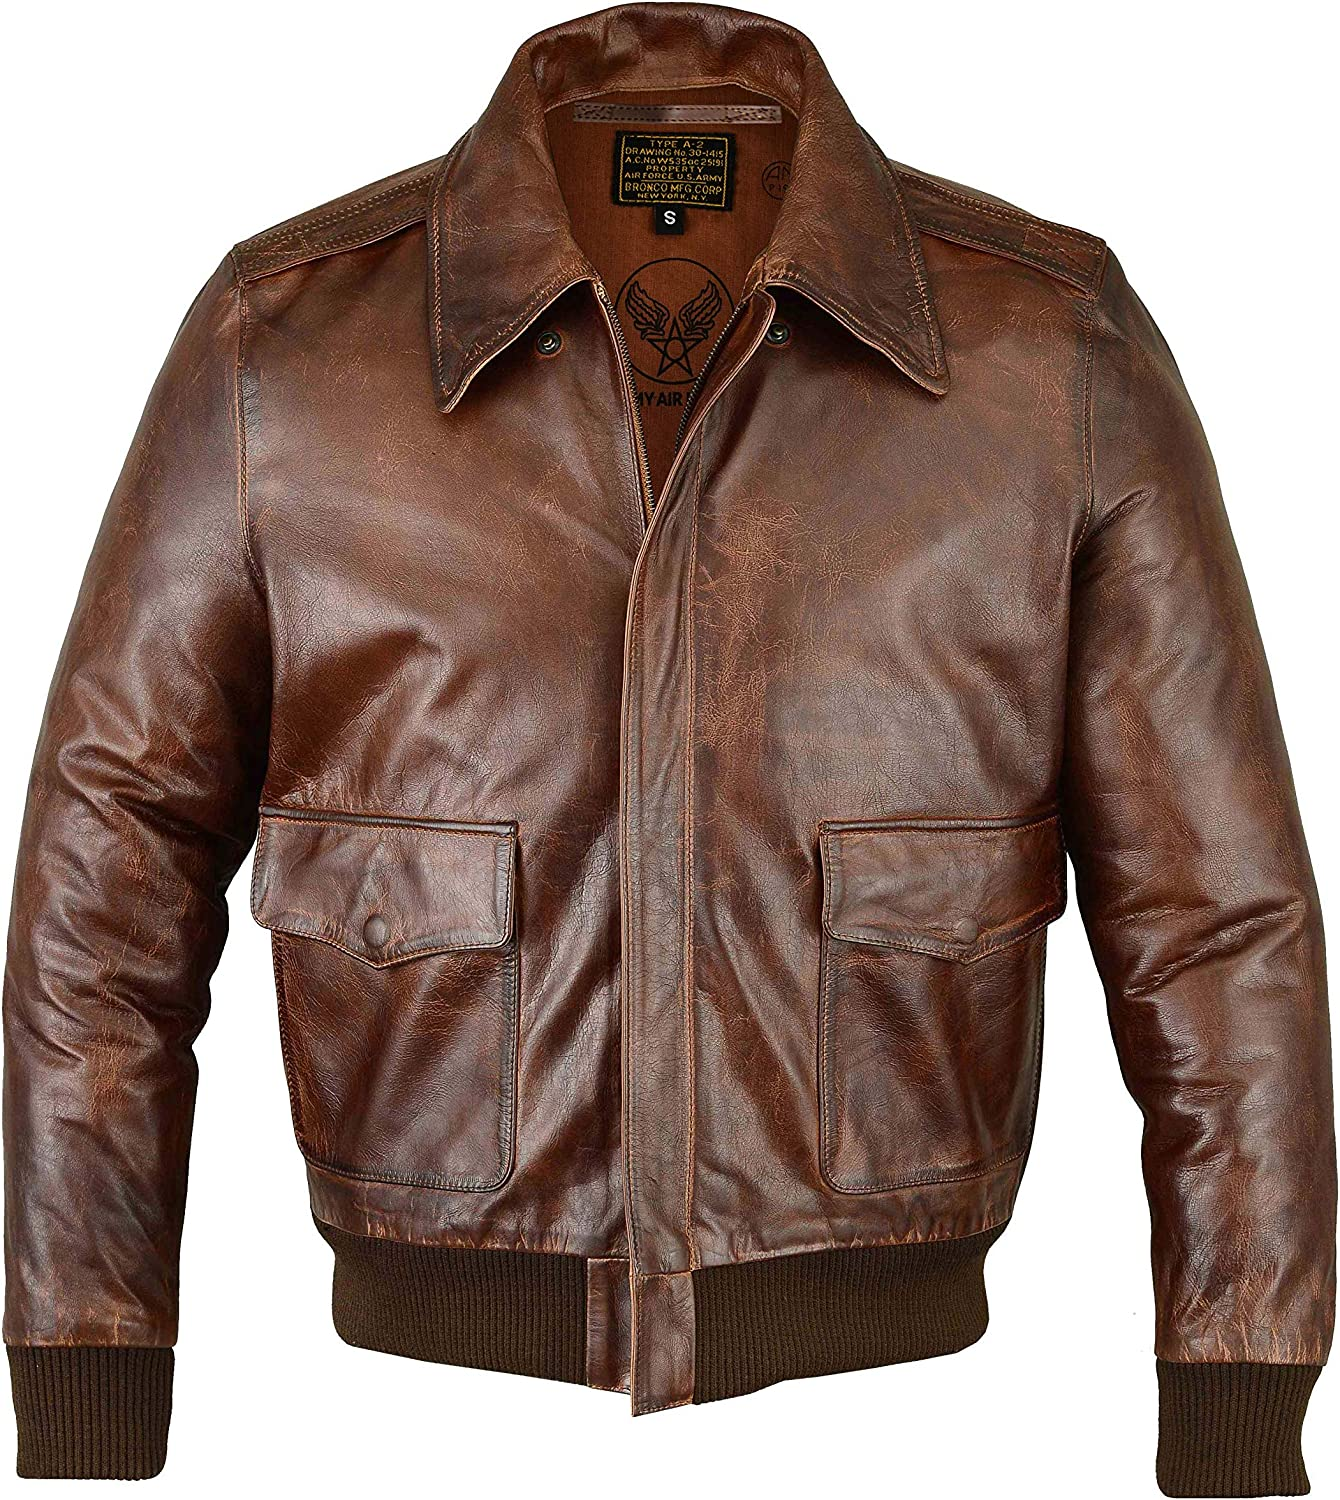 Hippie Dress | Long, Boho, Vintage, 70s FiveStar Leathers Mens Air Force A-2 Leather Flight Bomber Jacket $149.50 AT vintagedancer.com